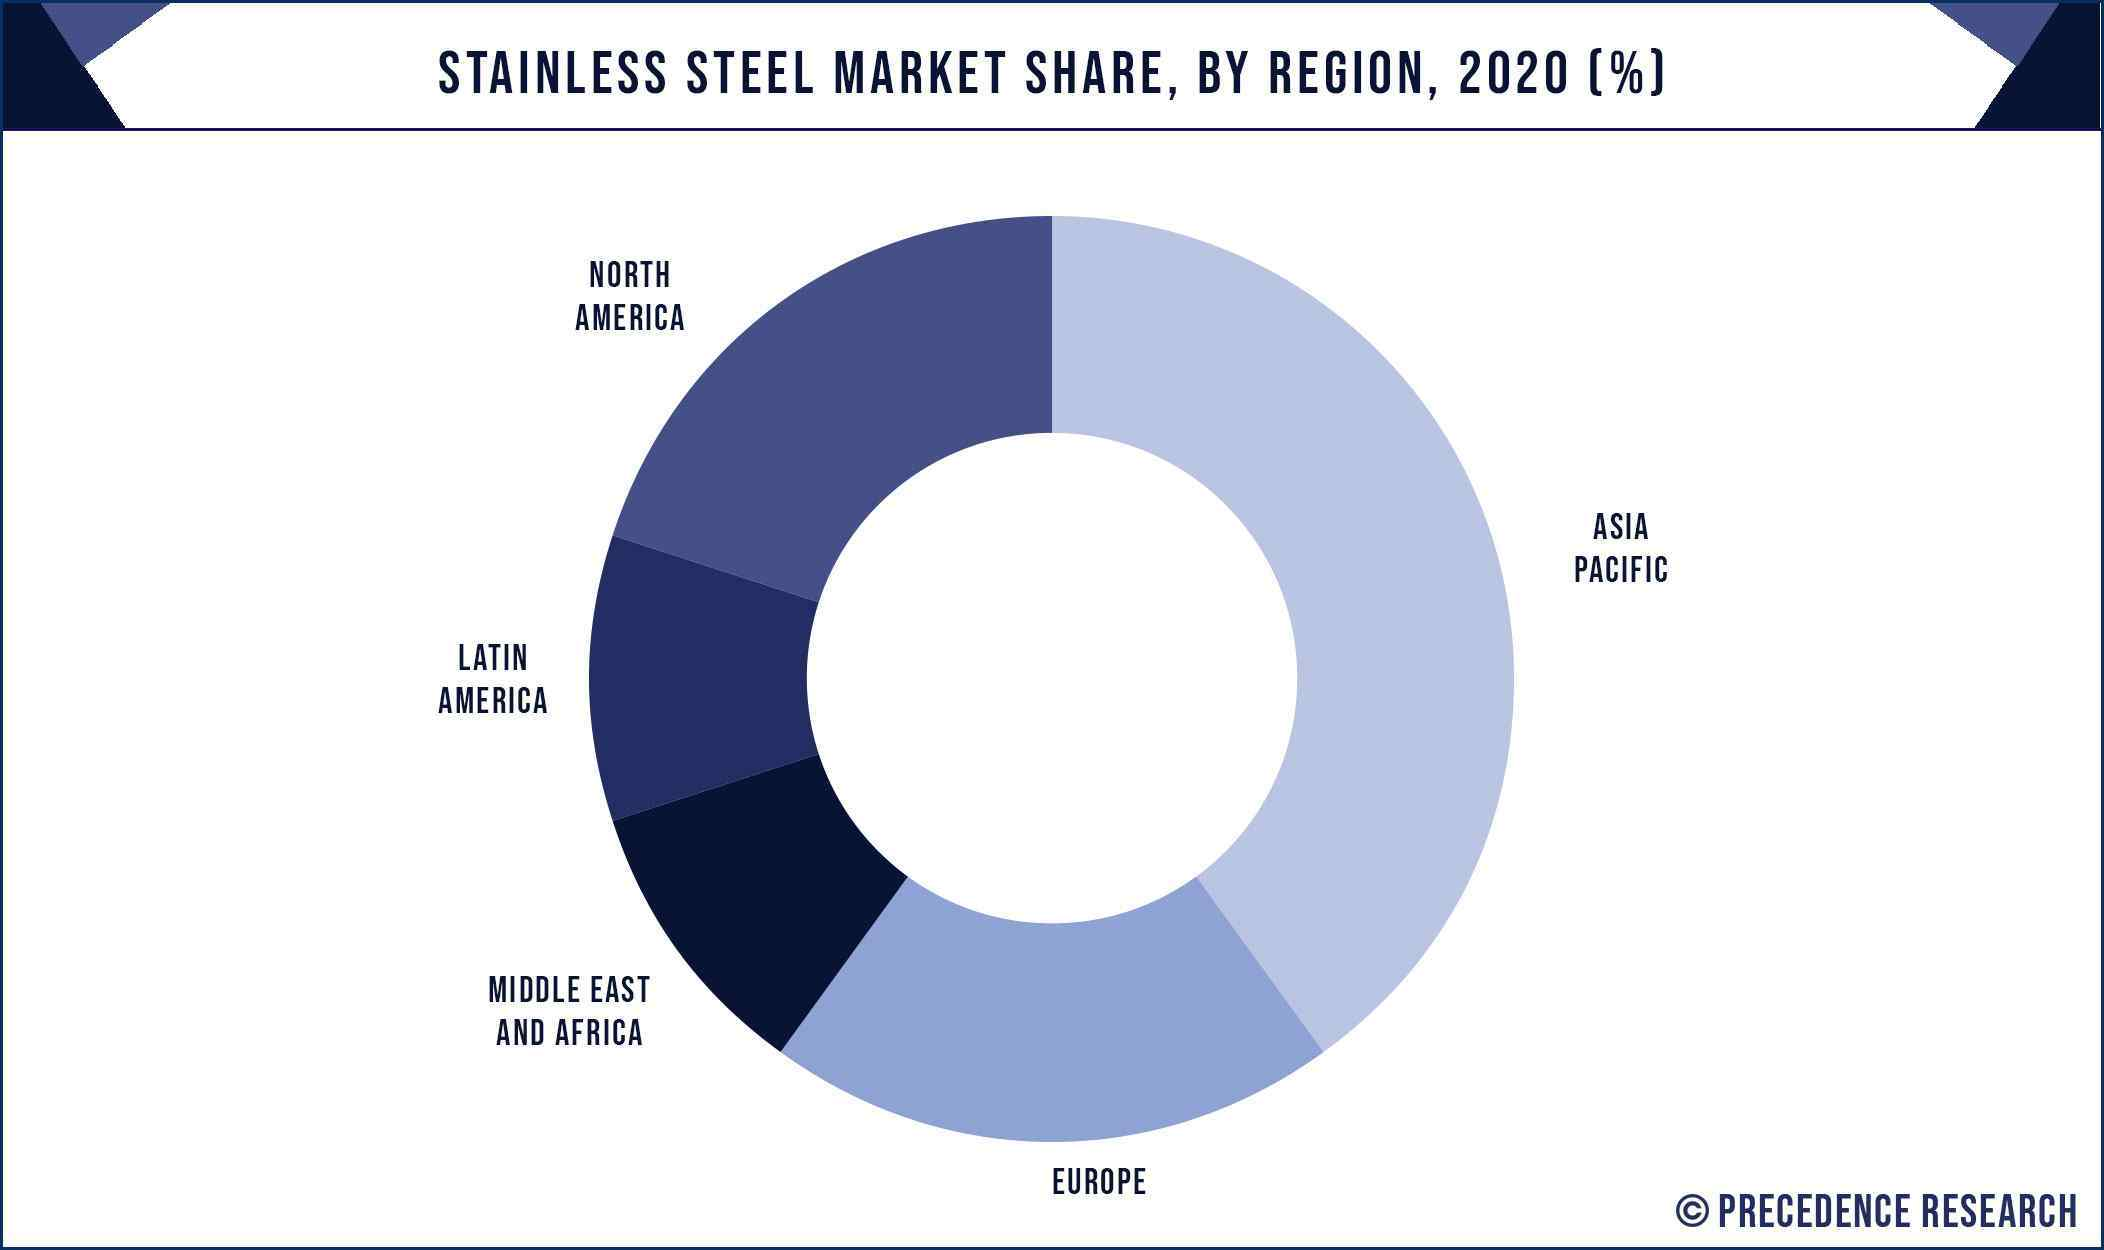 Stainless Steel Market Share, By Region, 2020 (%)